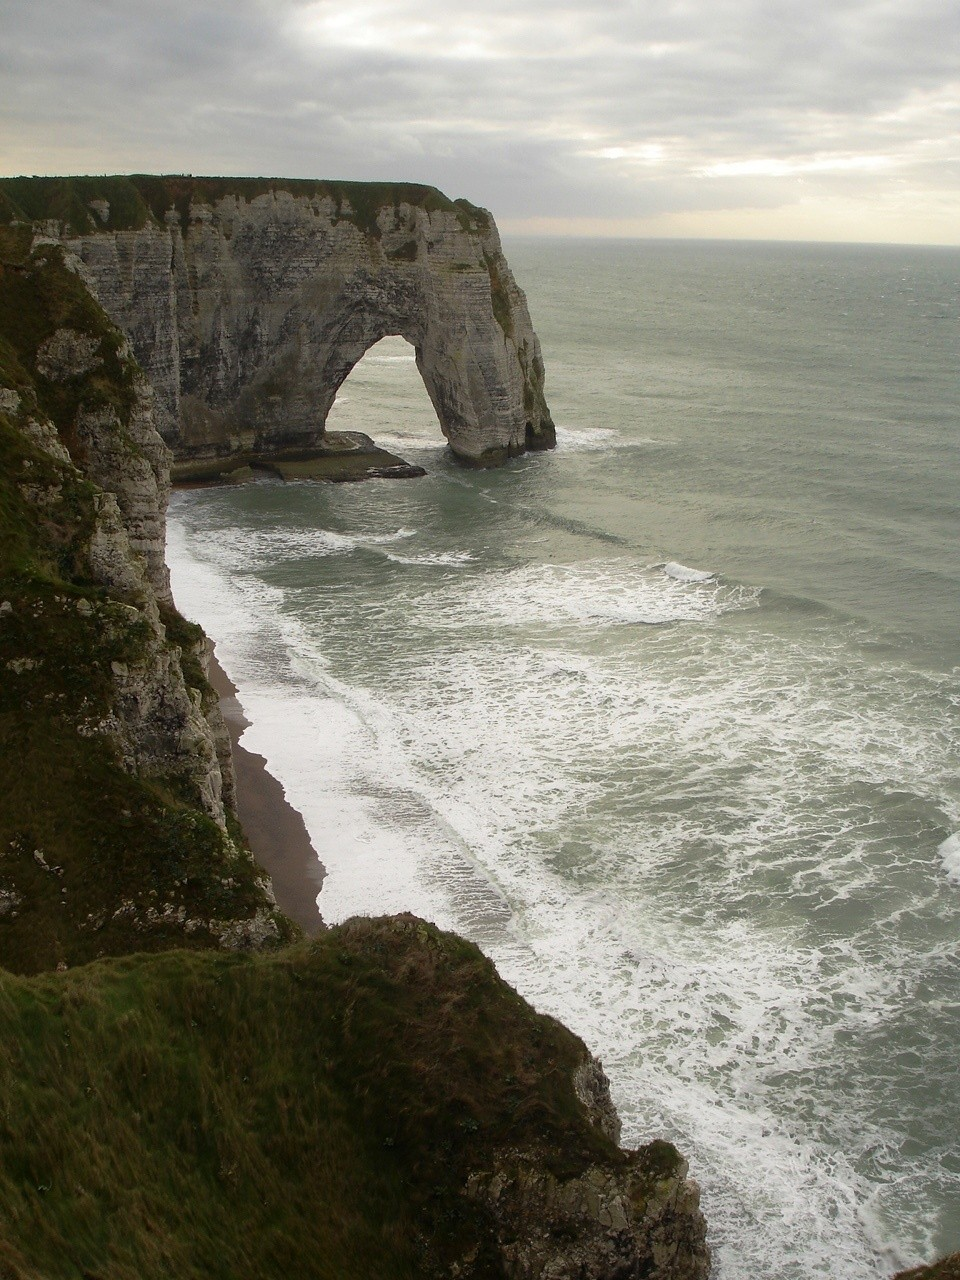 Kris Dejonghe's photo of Etretat